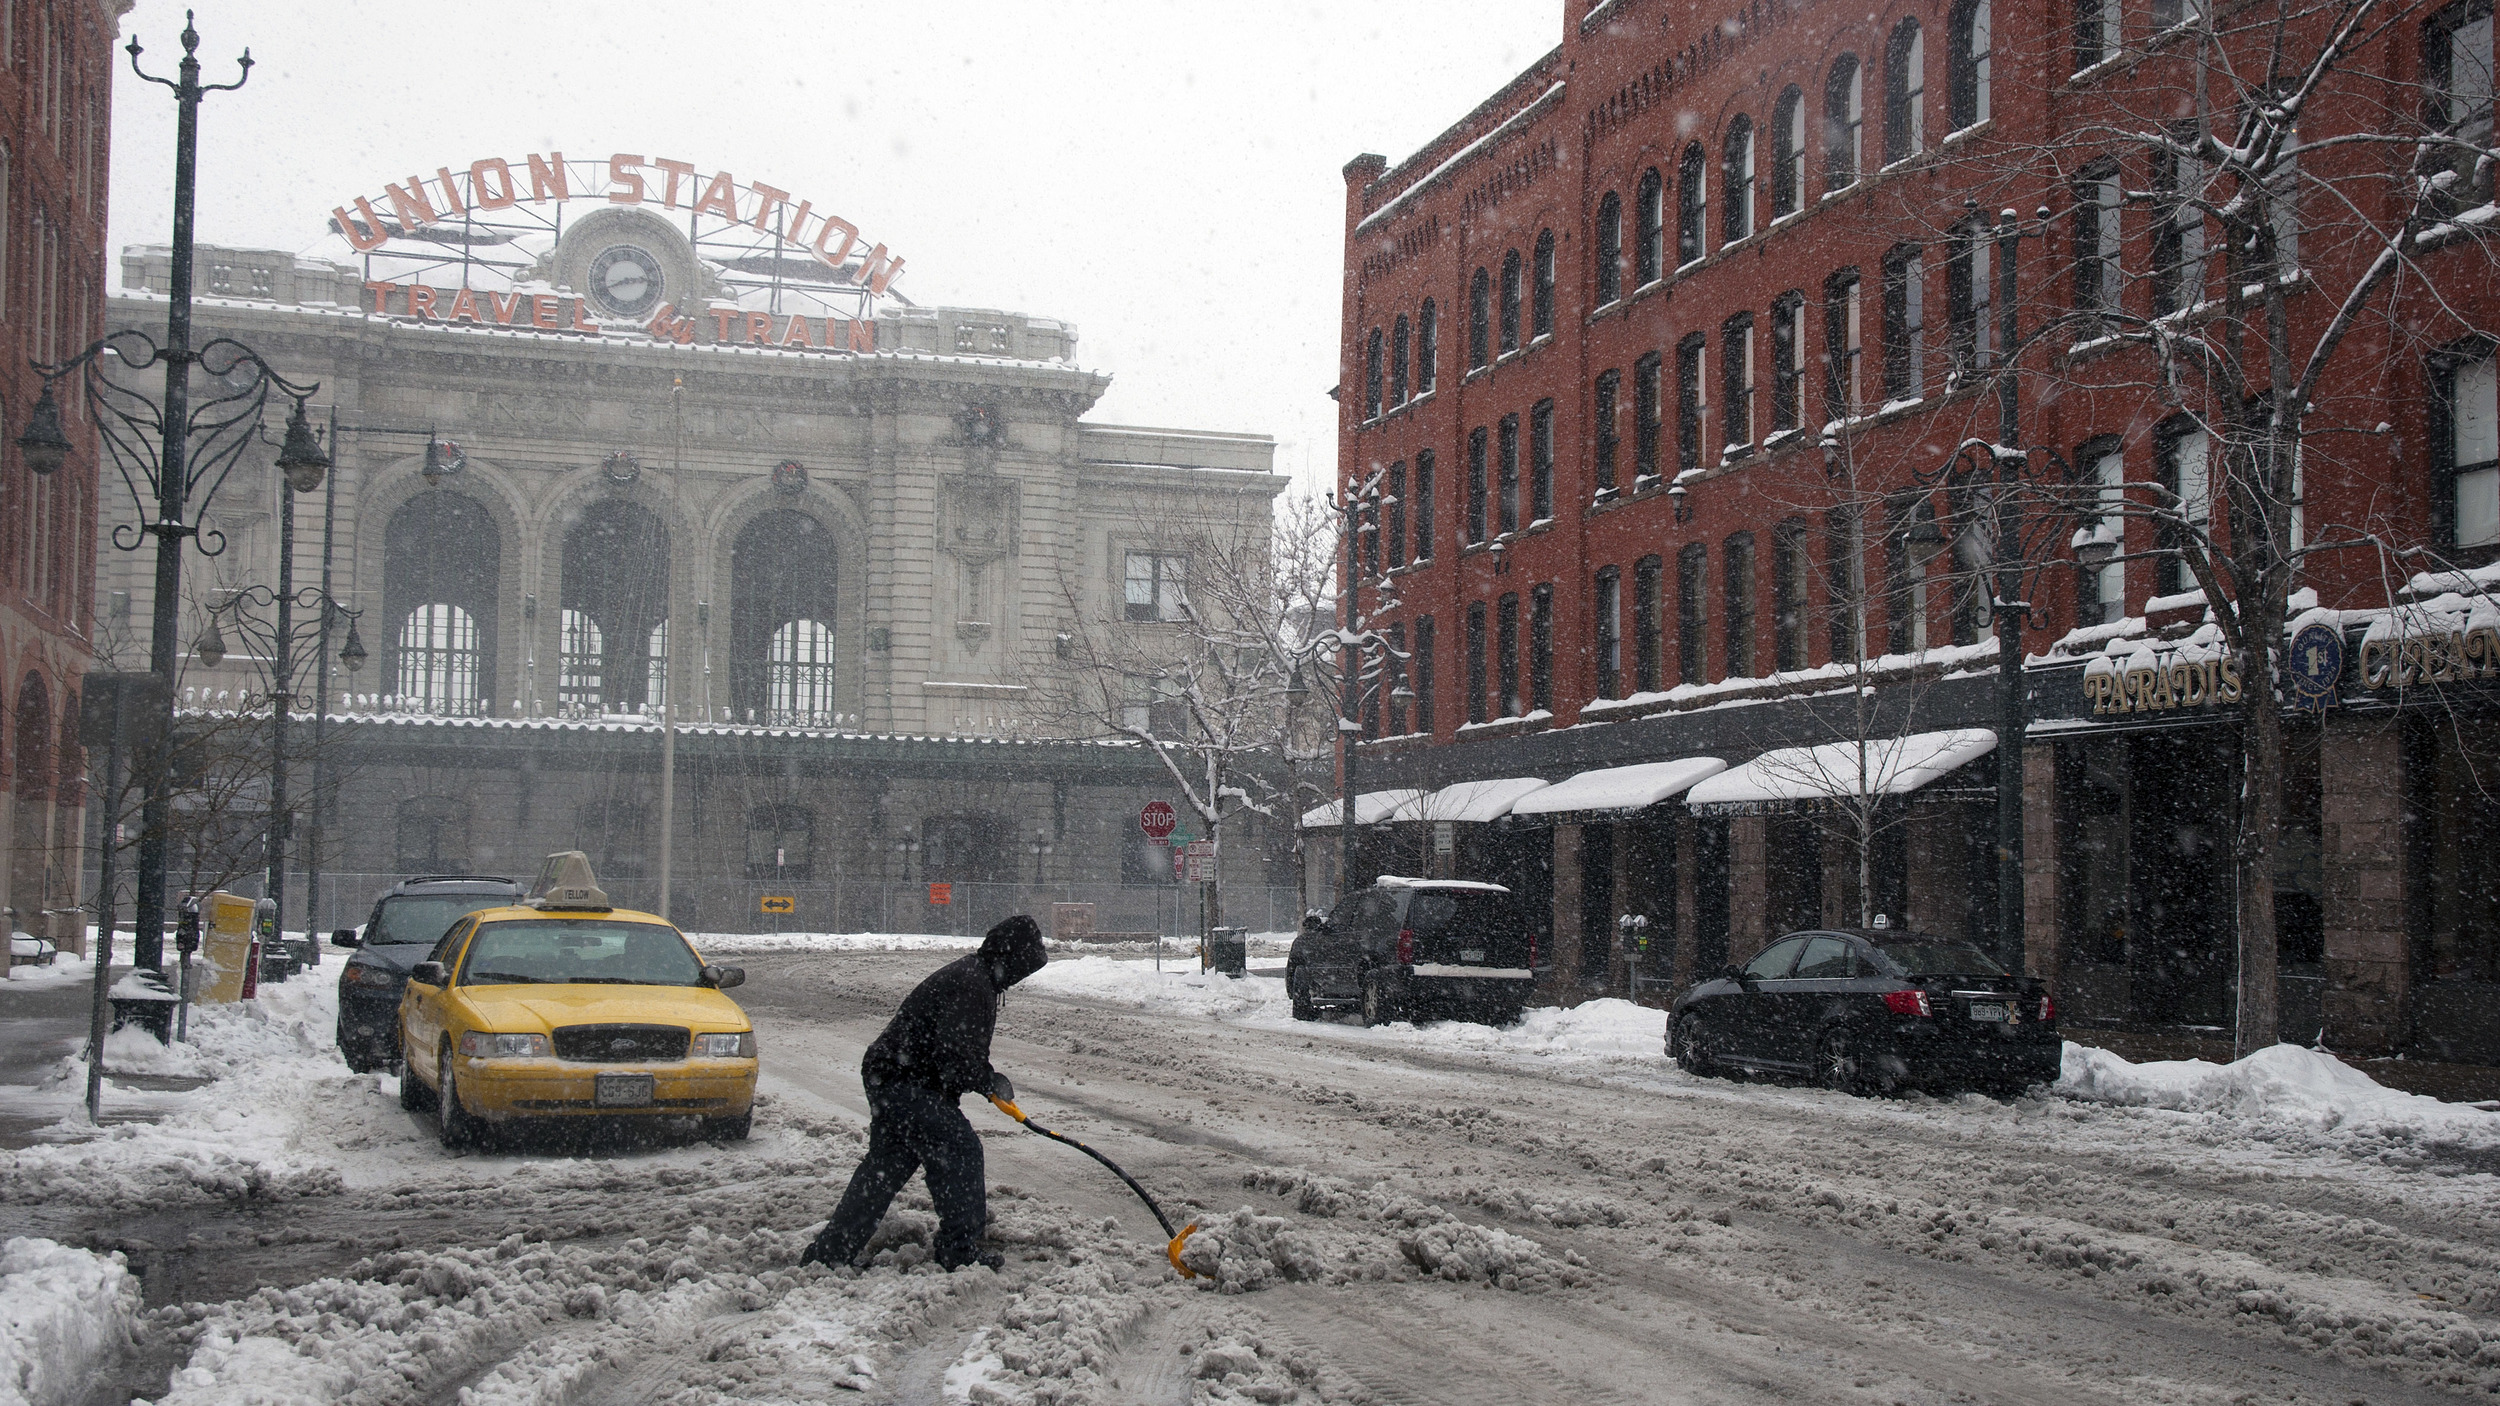 A man clears snow on Denver's 17th Street during a blizzard. By the time the snow stopped, nearly a foot and a half of snow blanketed the city.